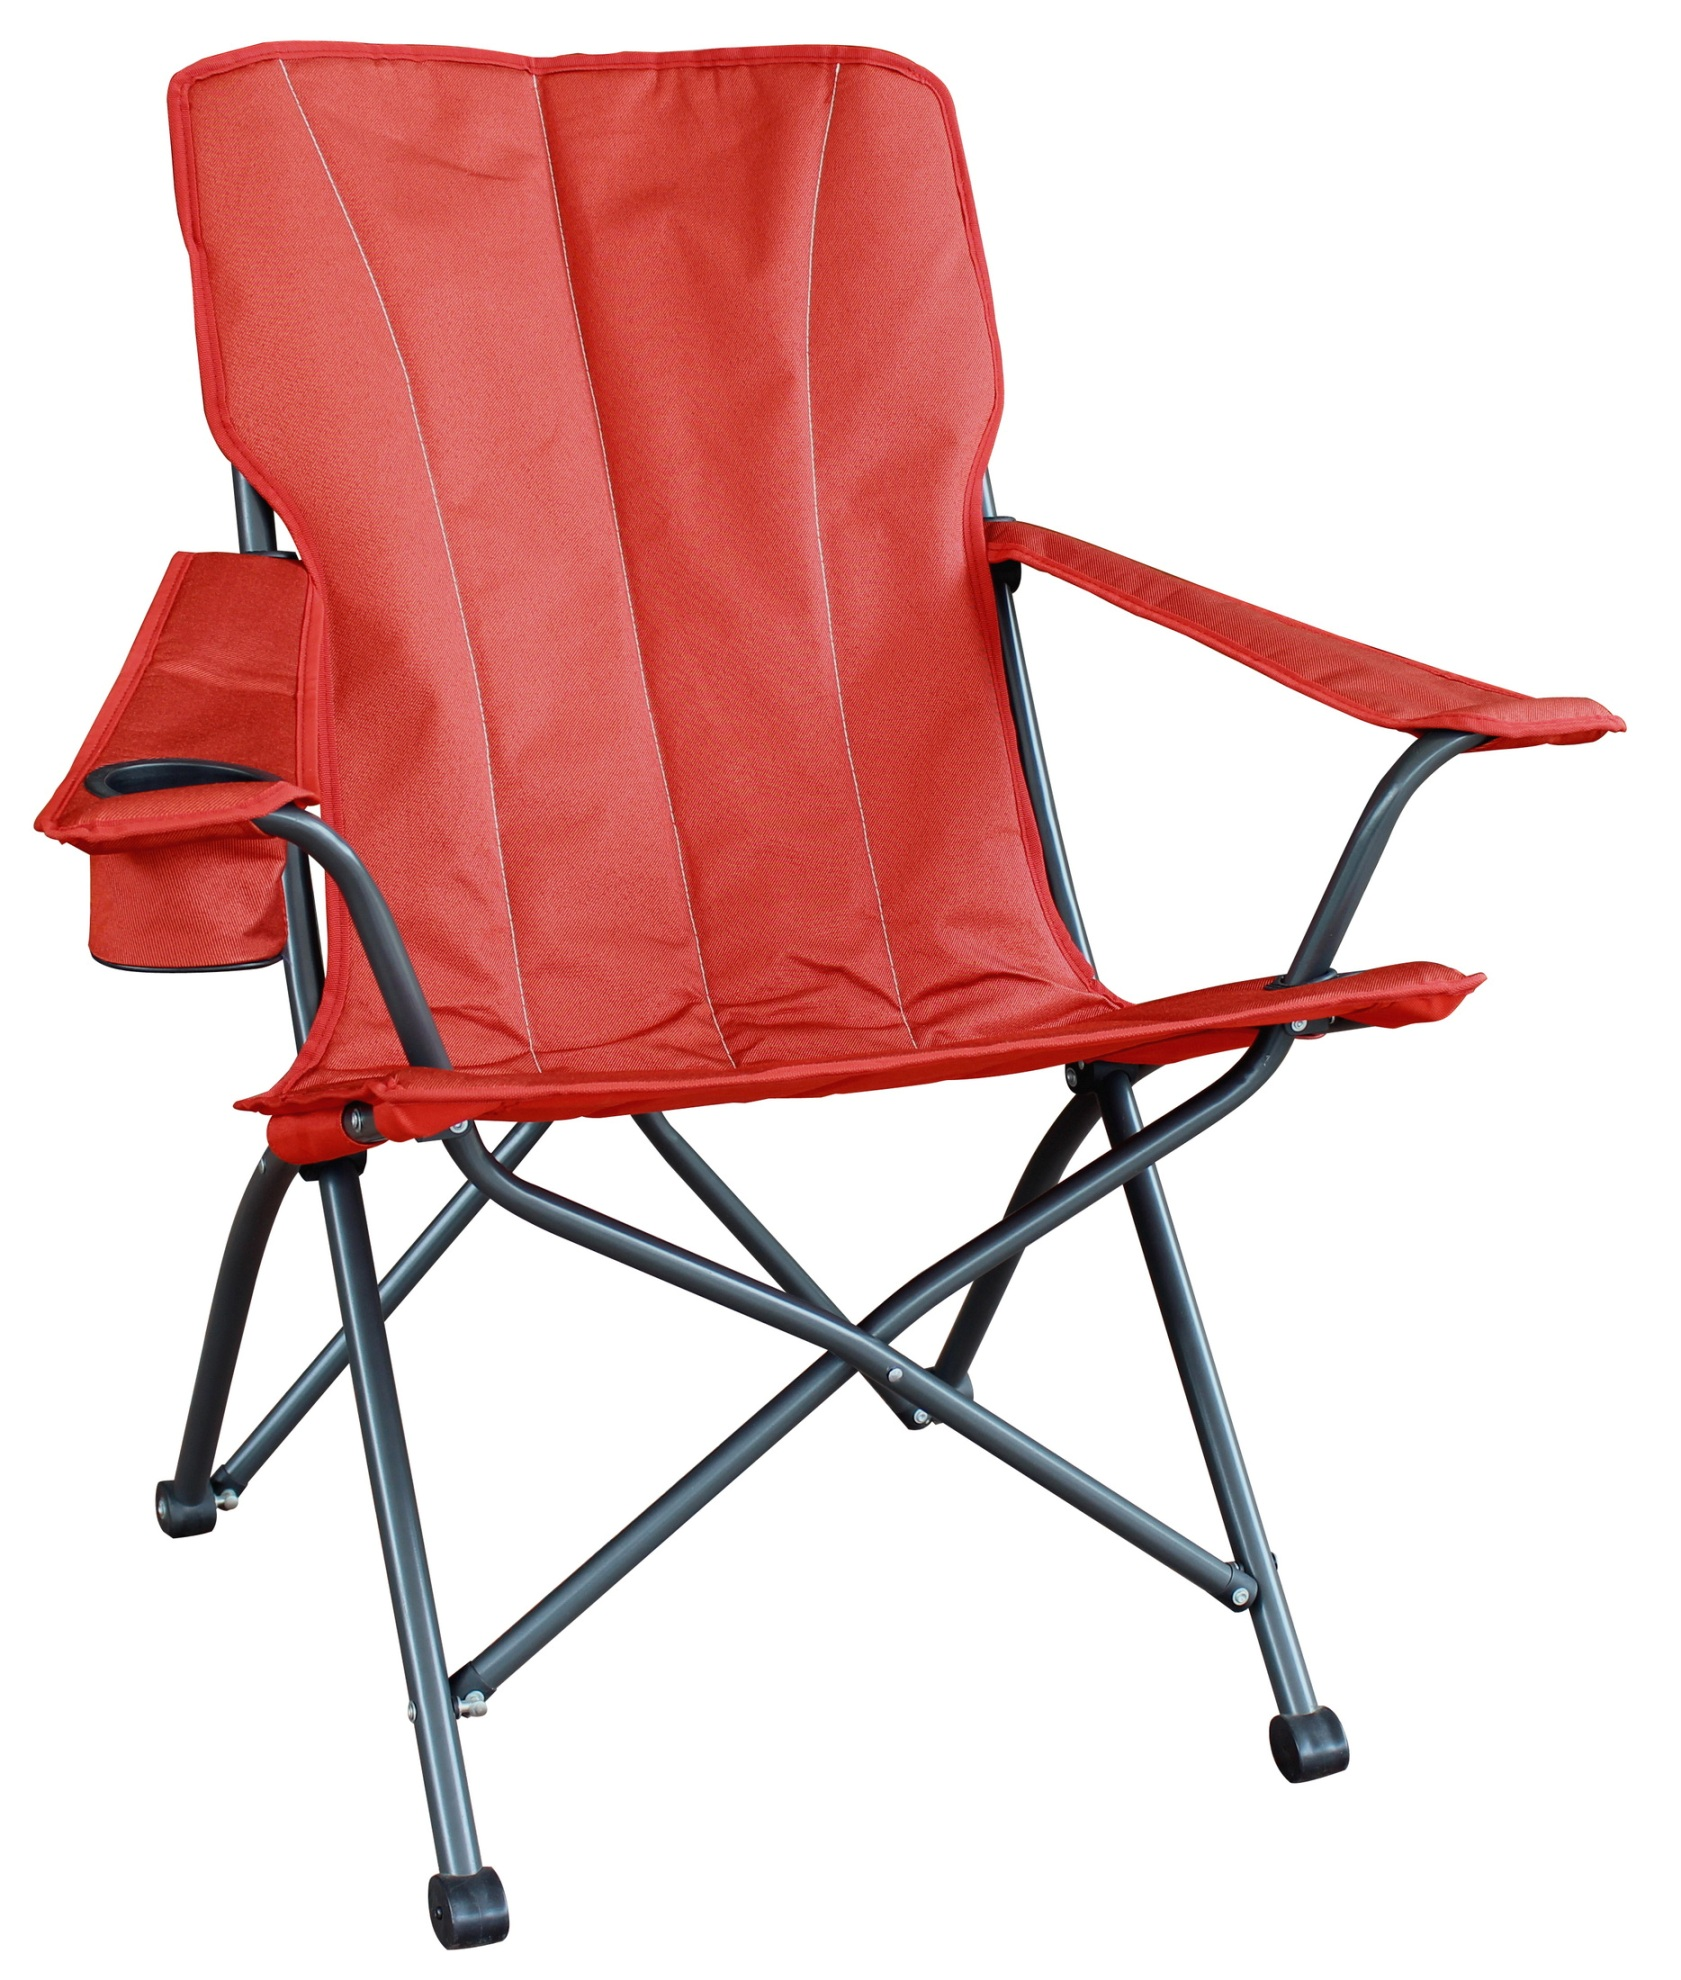 sport folding chairs clamp on chair umbrella northwest territory adirondack red